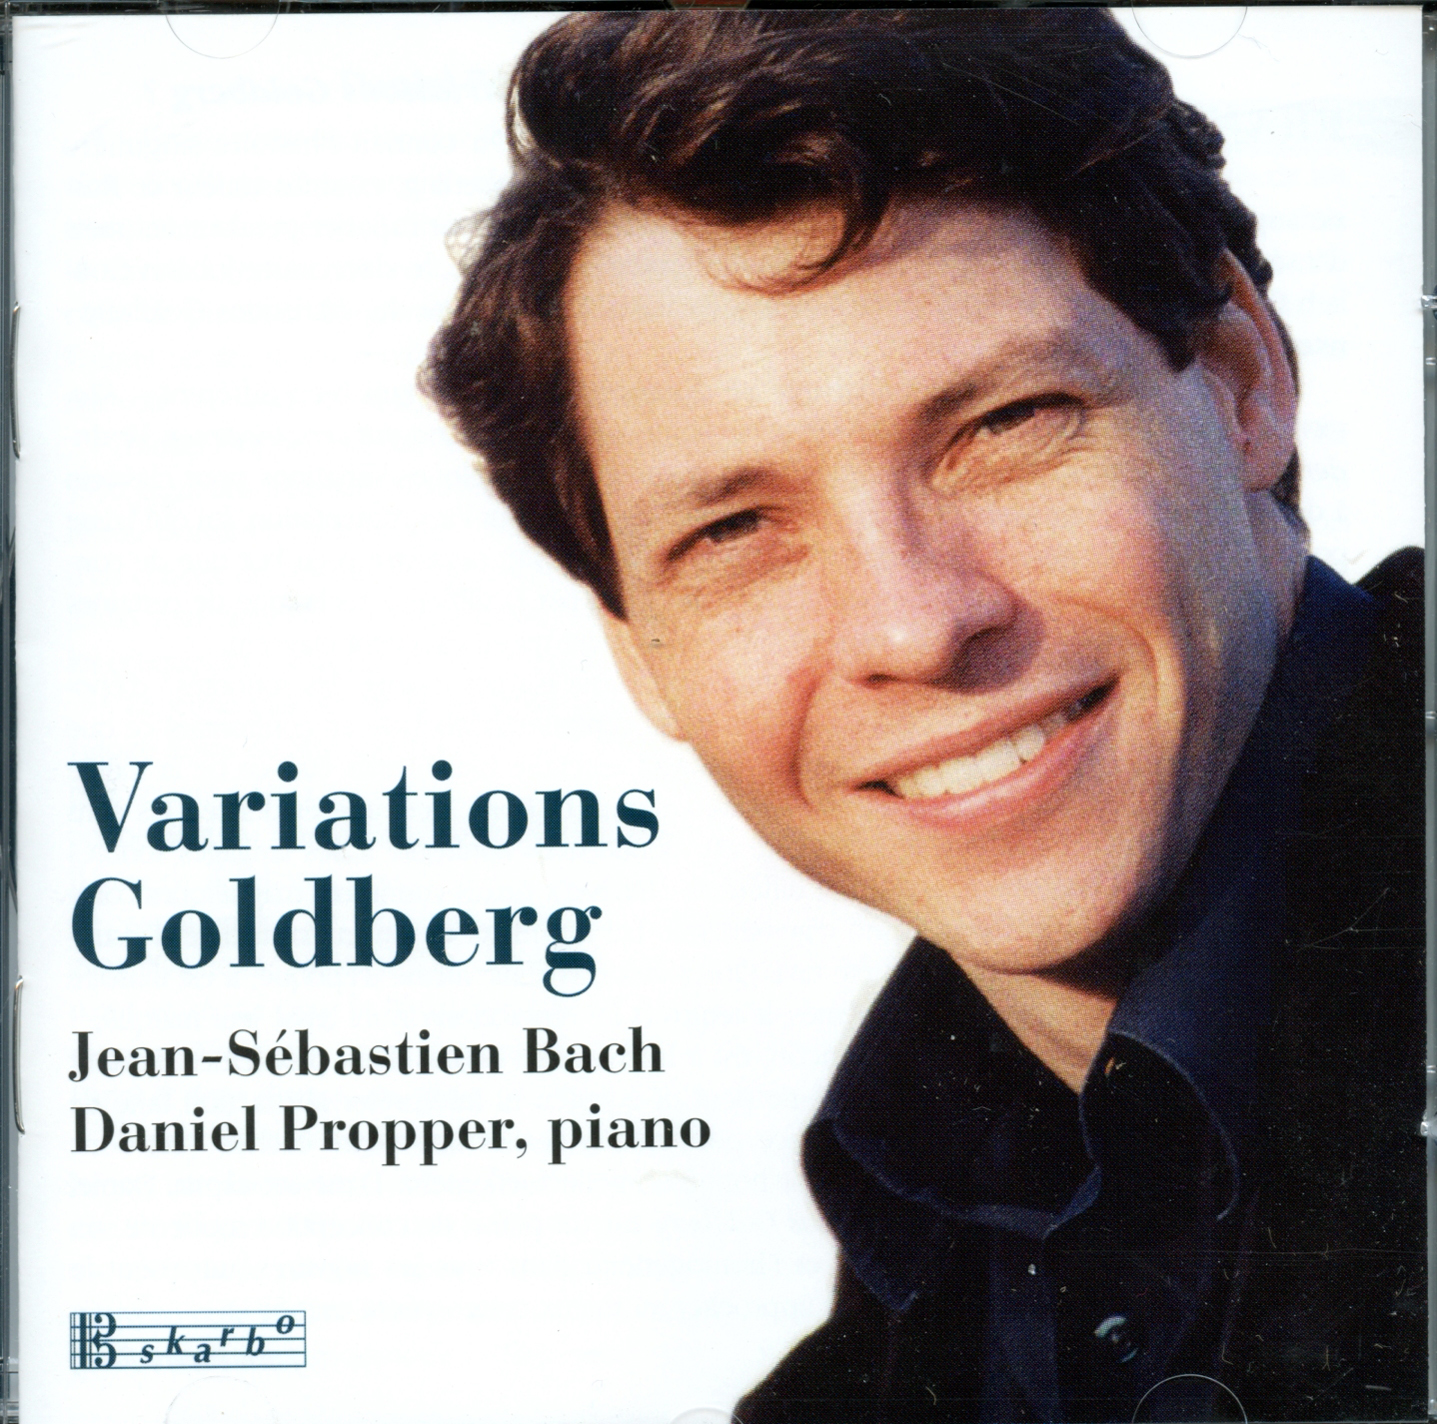 Goldberg Variations, BWV 988, Goldberg Variations, BWV 988: Variatio 5. a 1 ô vero 2 Clav.